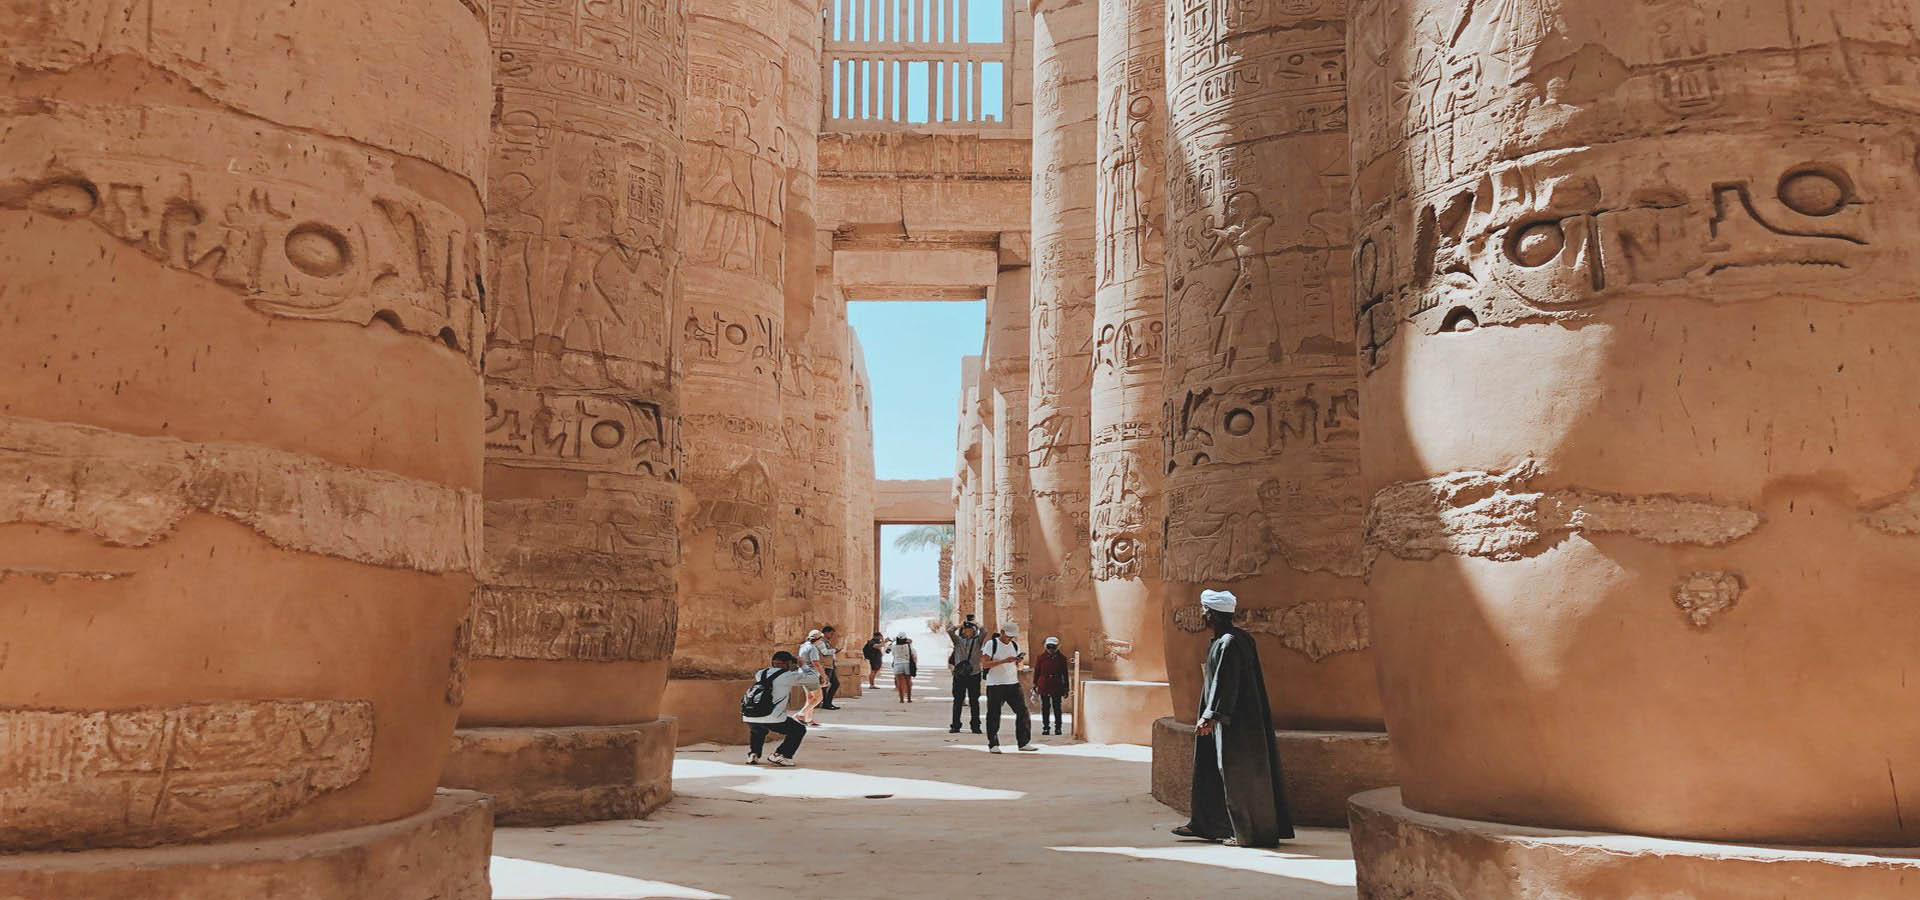 17 Day / 16 Night Ultimate Egypt Tour & Nile Valley Experience